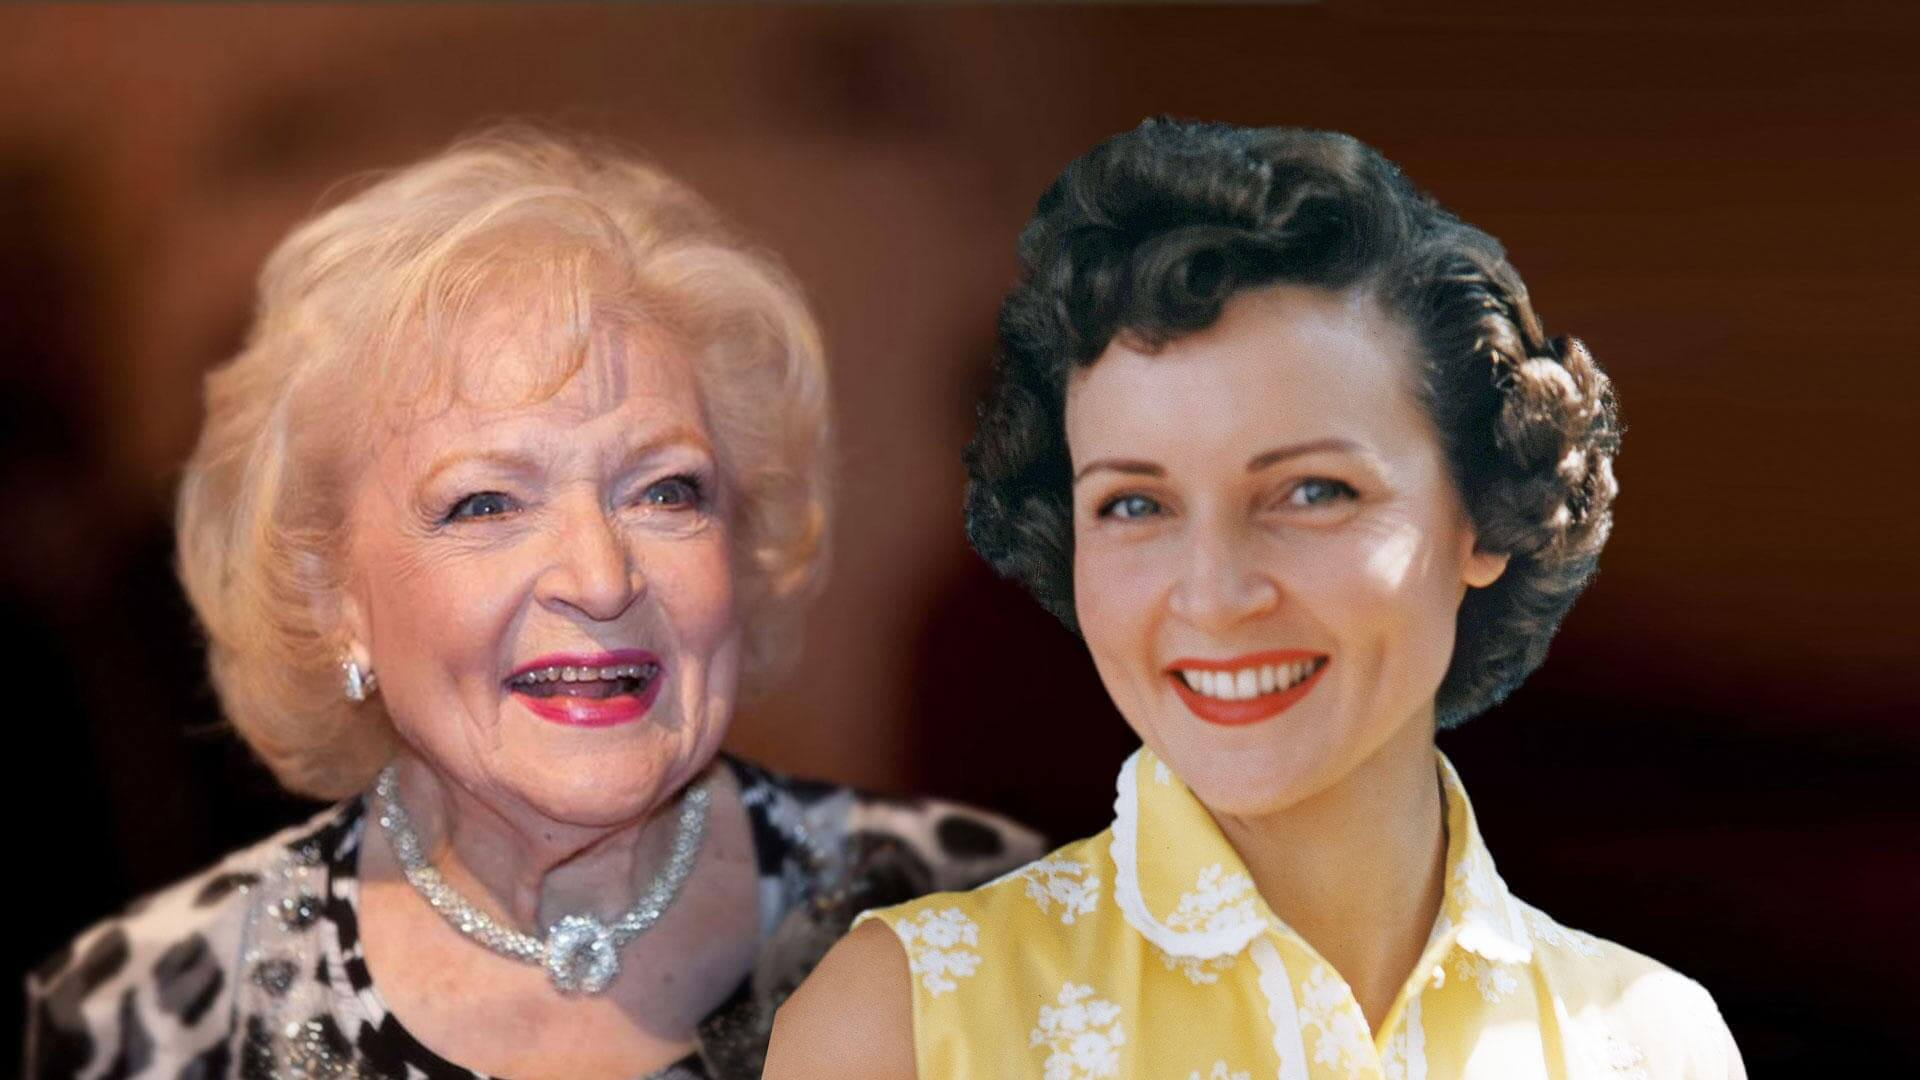 What is Bechdel Test - The Betty White